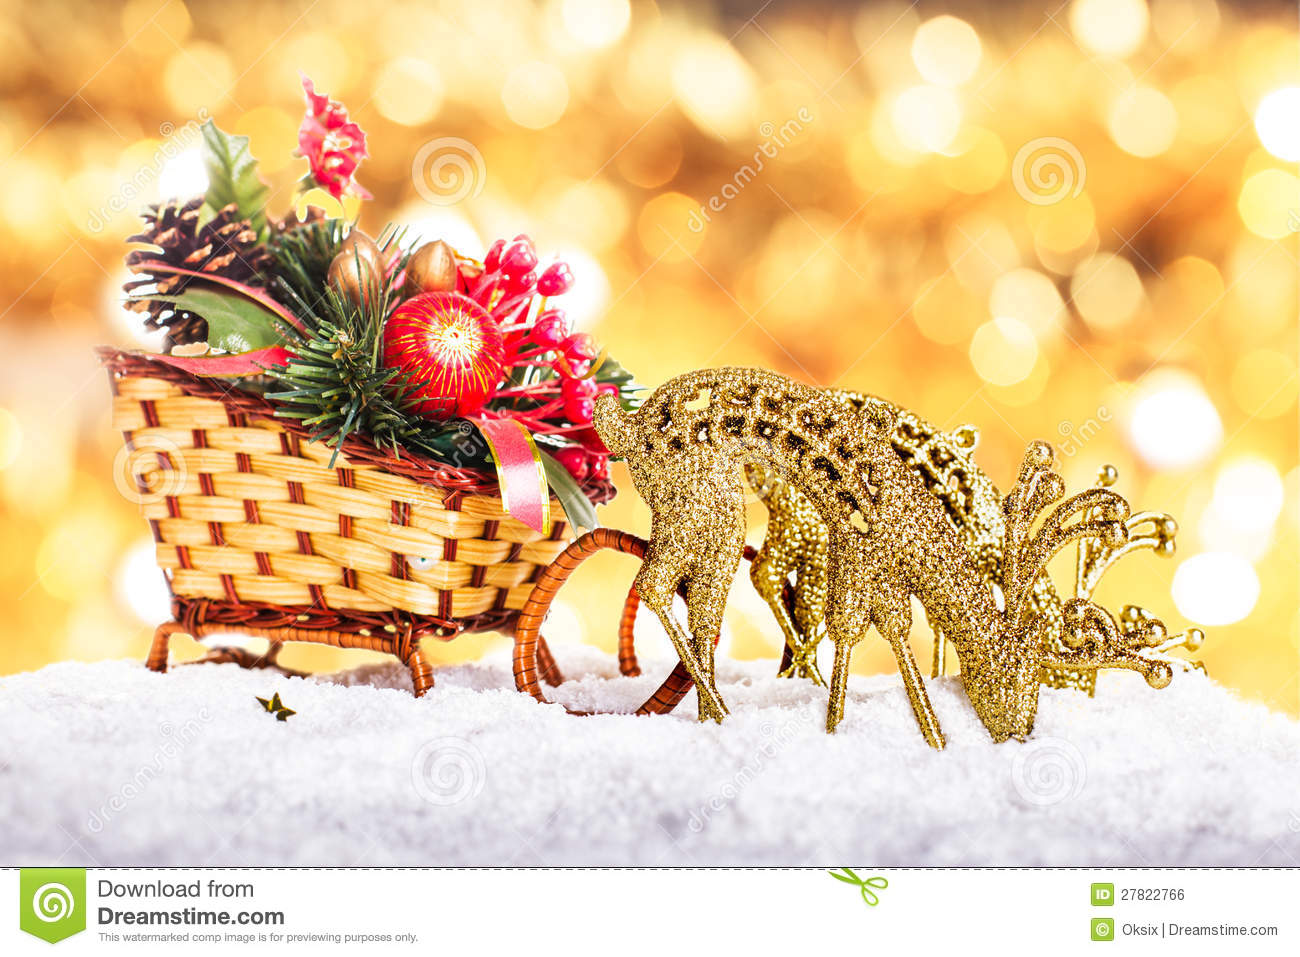 Christmas Decor: Sleigh And Reindeers Stock Photo - Image of ...